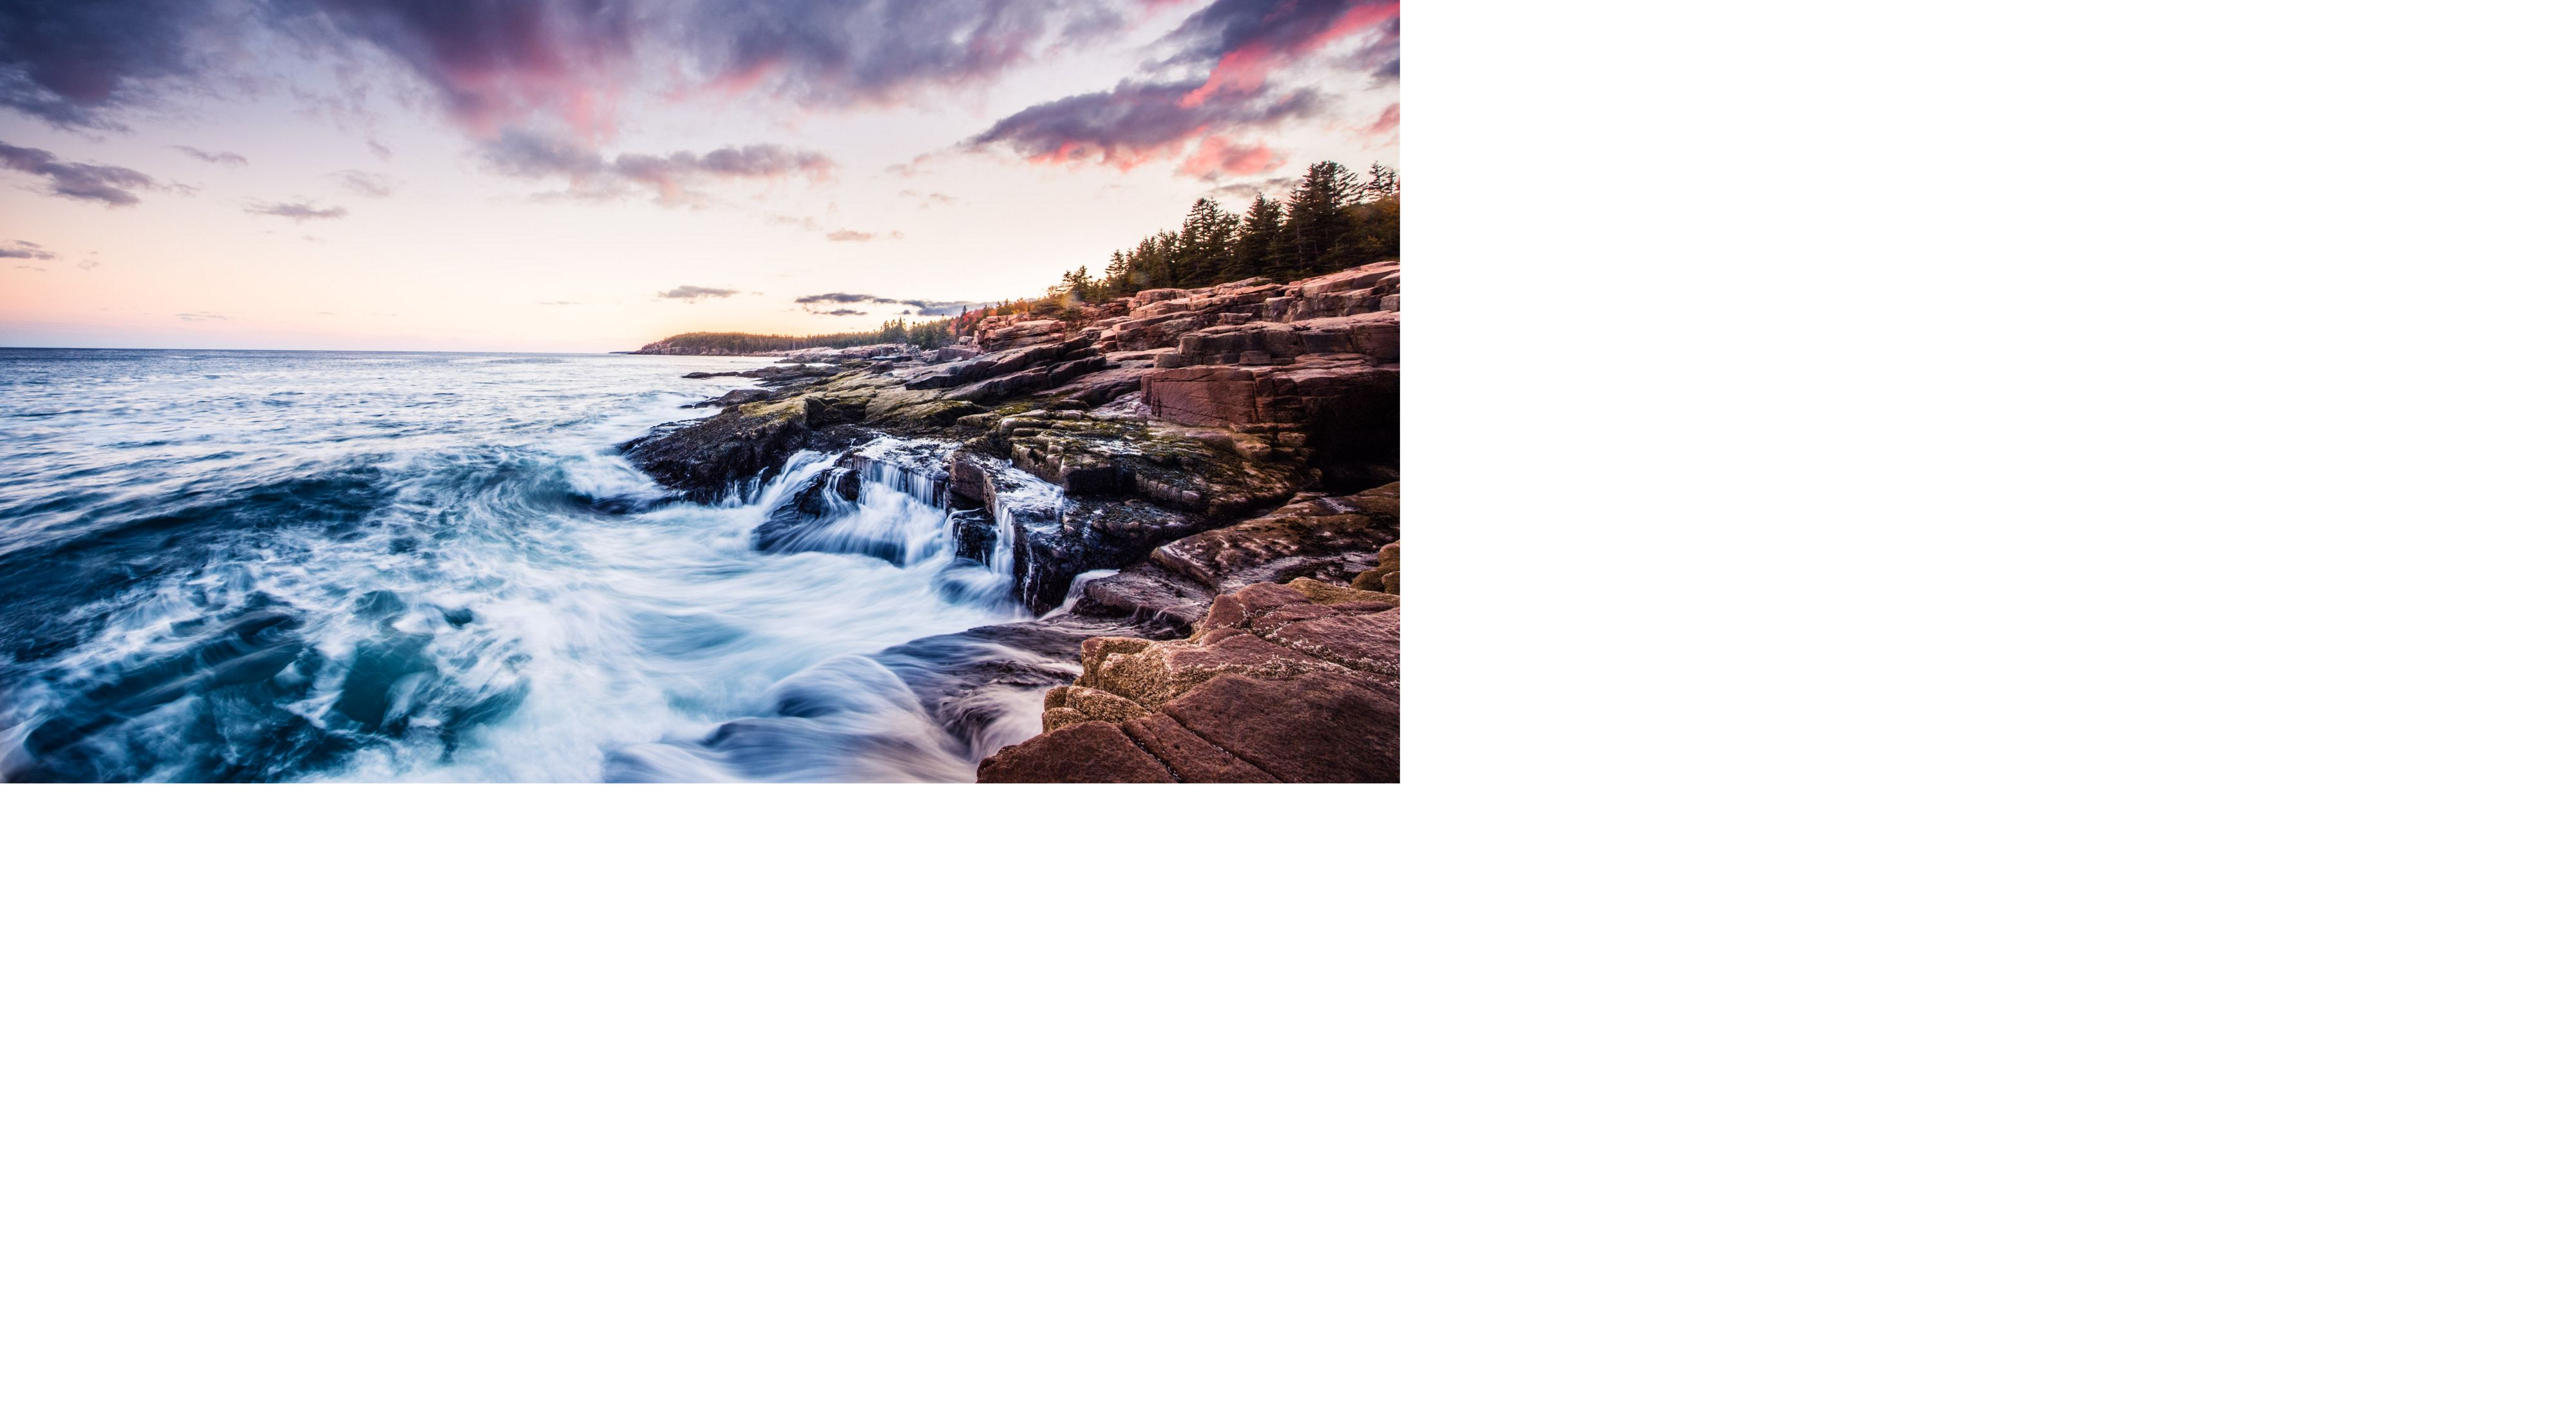 Waves crashing against the rocky coast of Acadia National Park at sunset, Maine. In 2016, the National Park Service celebrated their 100 year anniversary.